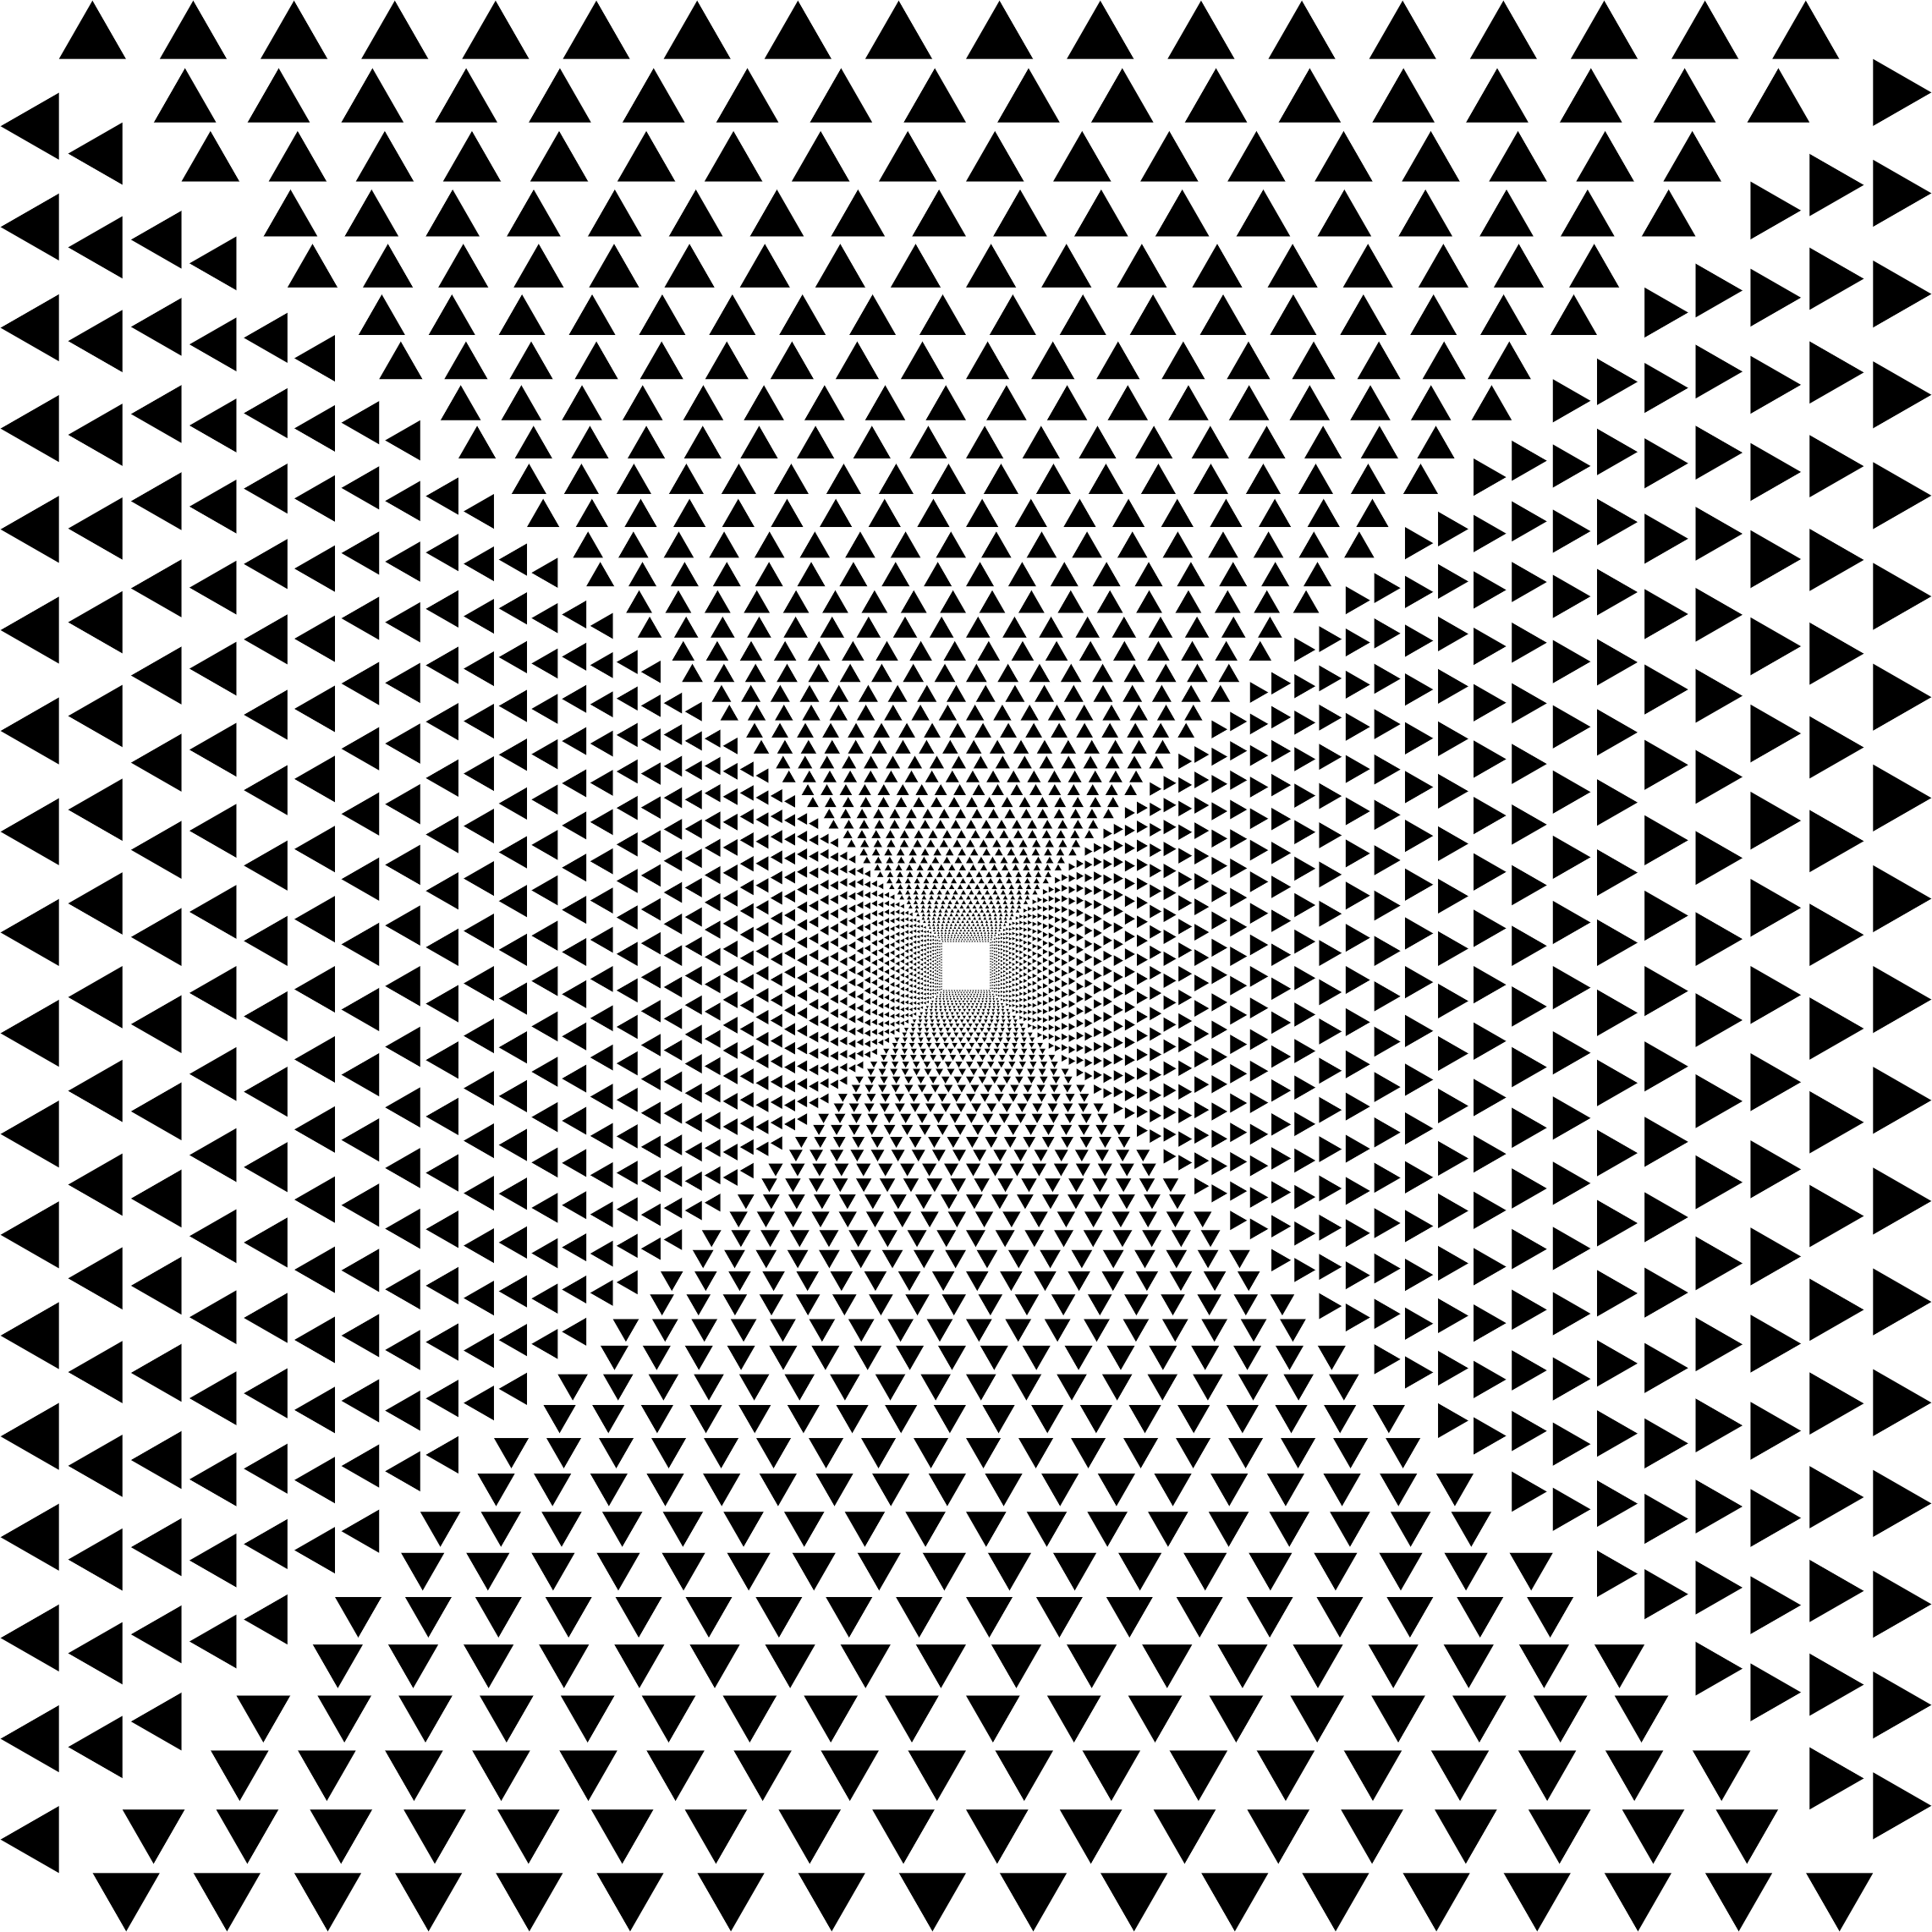 Hypnotic Triangular Vortex by GDJ